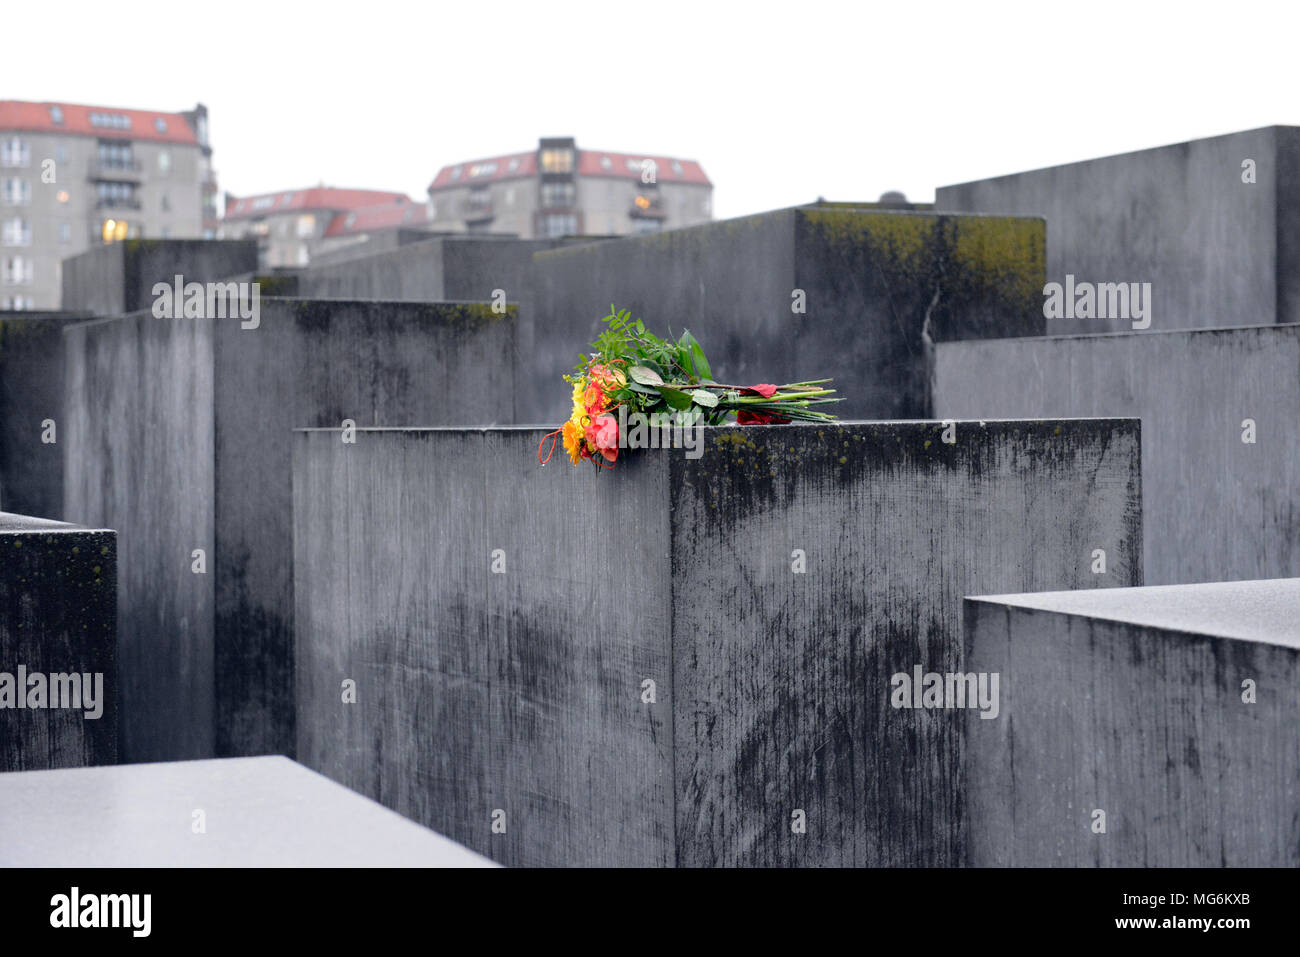 Bright bouquet of flowers on gray concrete blocks contrasts with oppressive damp grey stone of Holocaust memorial Berlin Germany - Stock Image